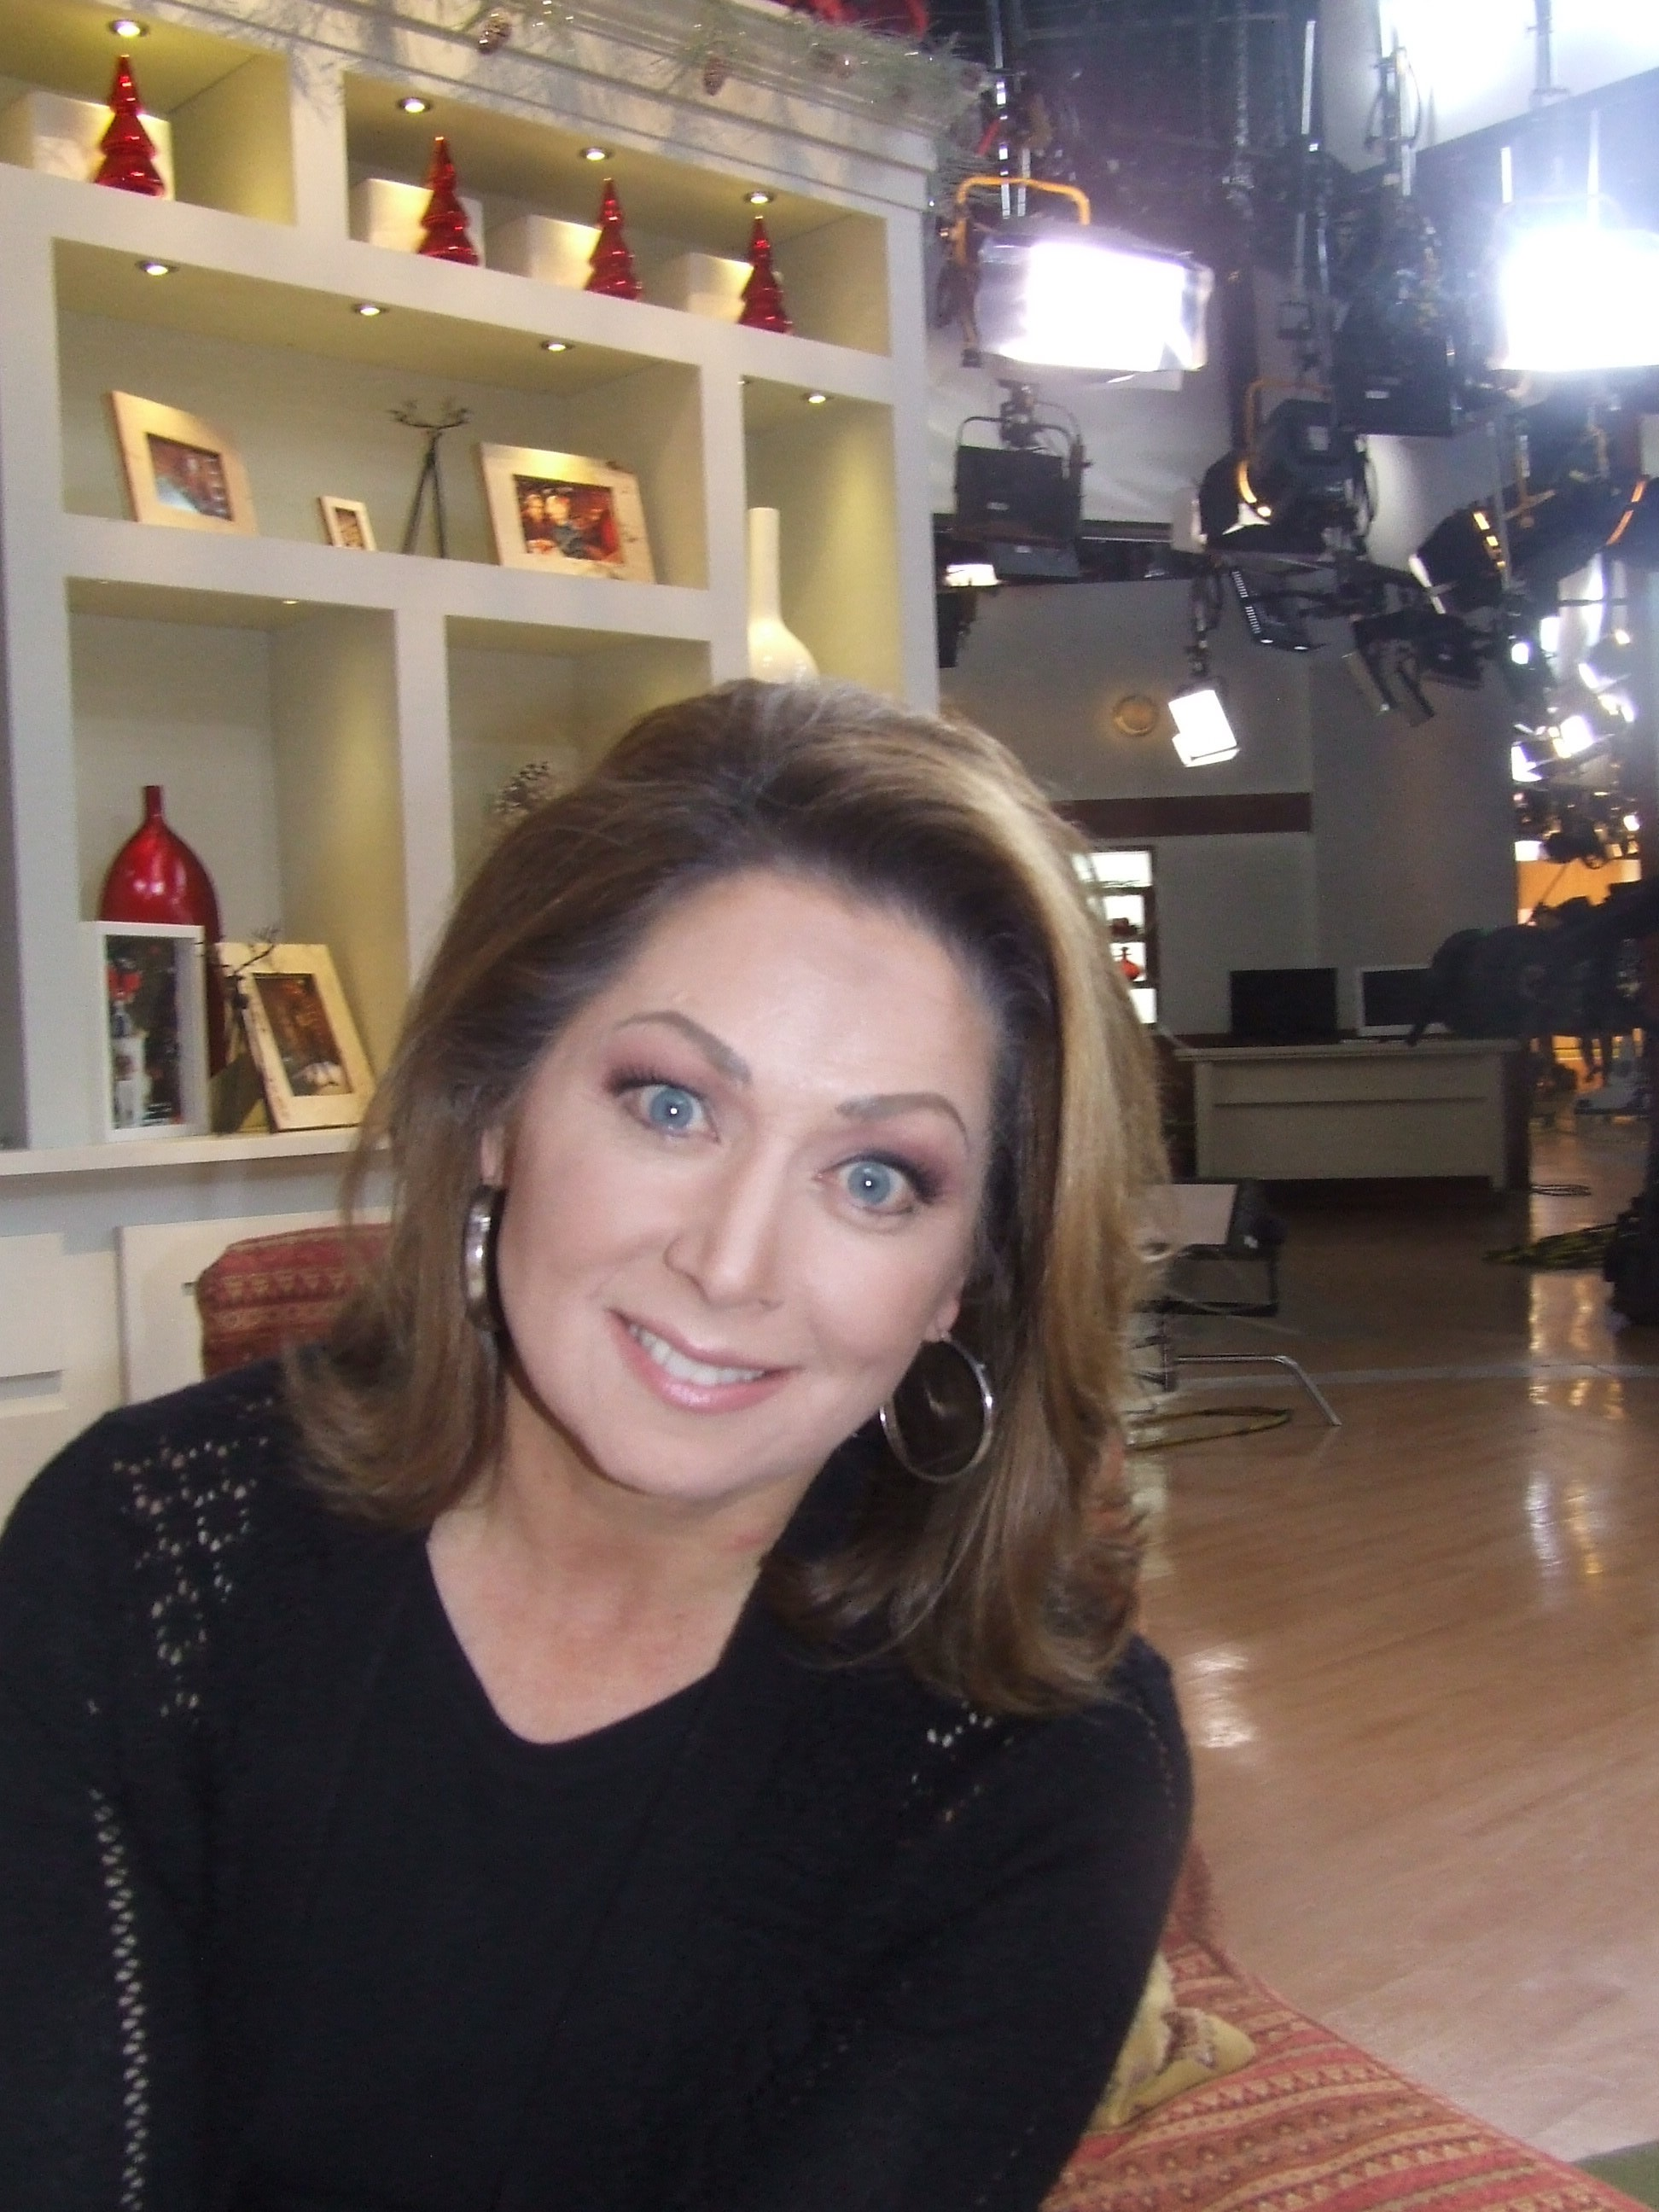 Qvc Masson Ex Qvc Host Lisa Mason Has Public Tv Gig